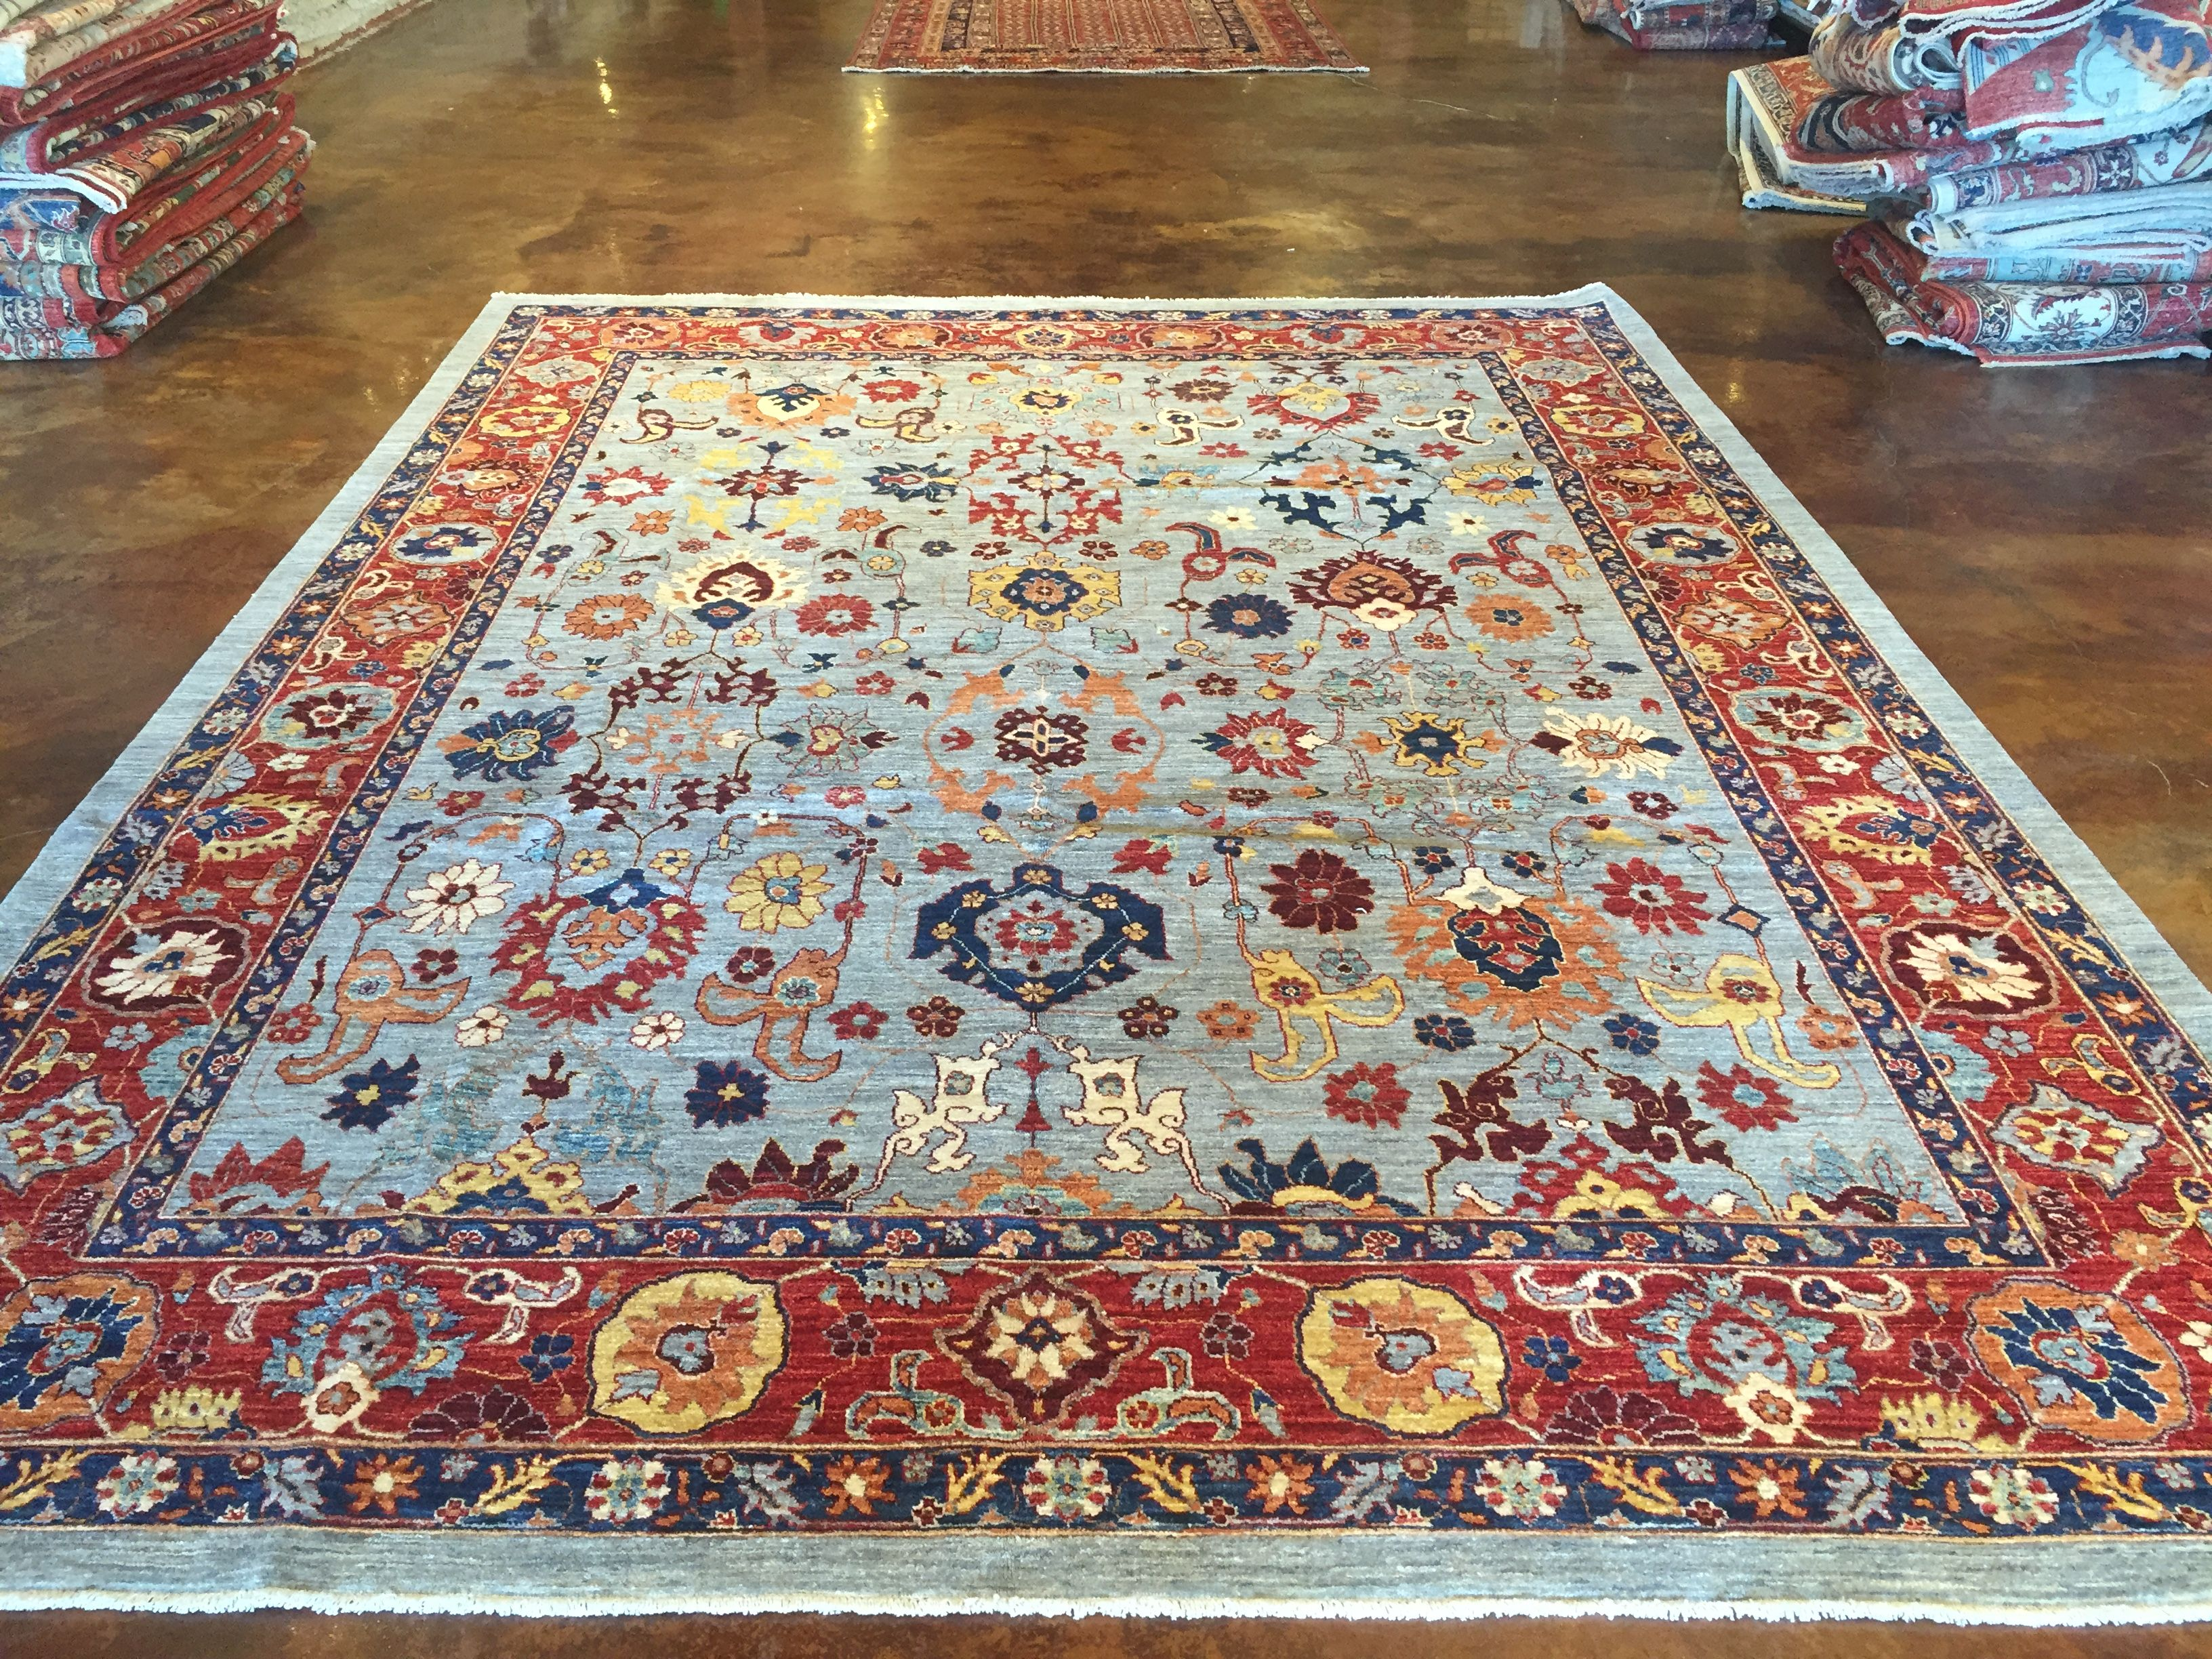 Blue Blossoms This Hand Knotted Pile Rug Is Made Using 100 Natural Dyes And Handspun Wool This Rug Is Wo Handmade Oriental Rugs Carpet World Carpet Handmade